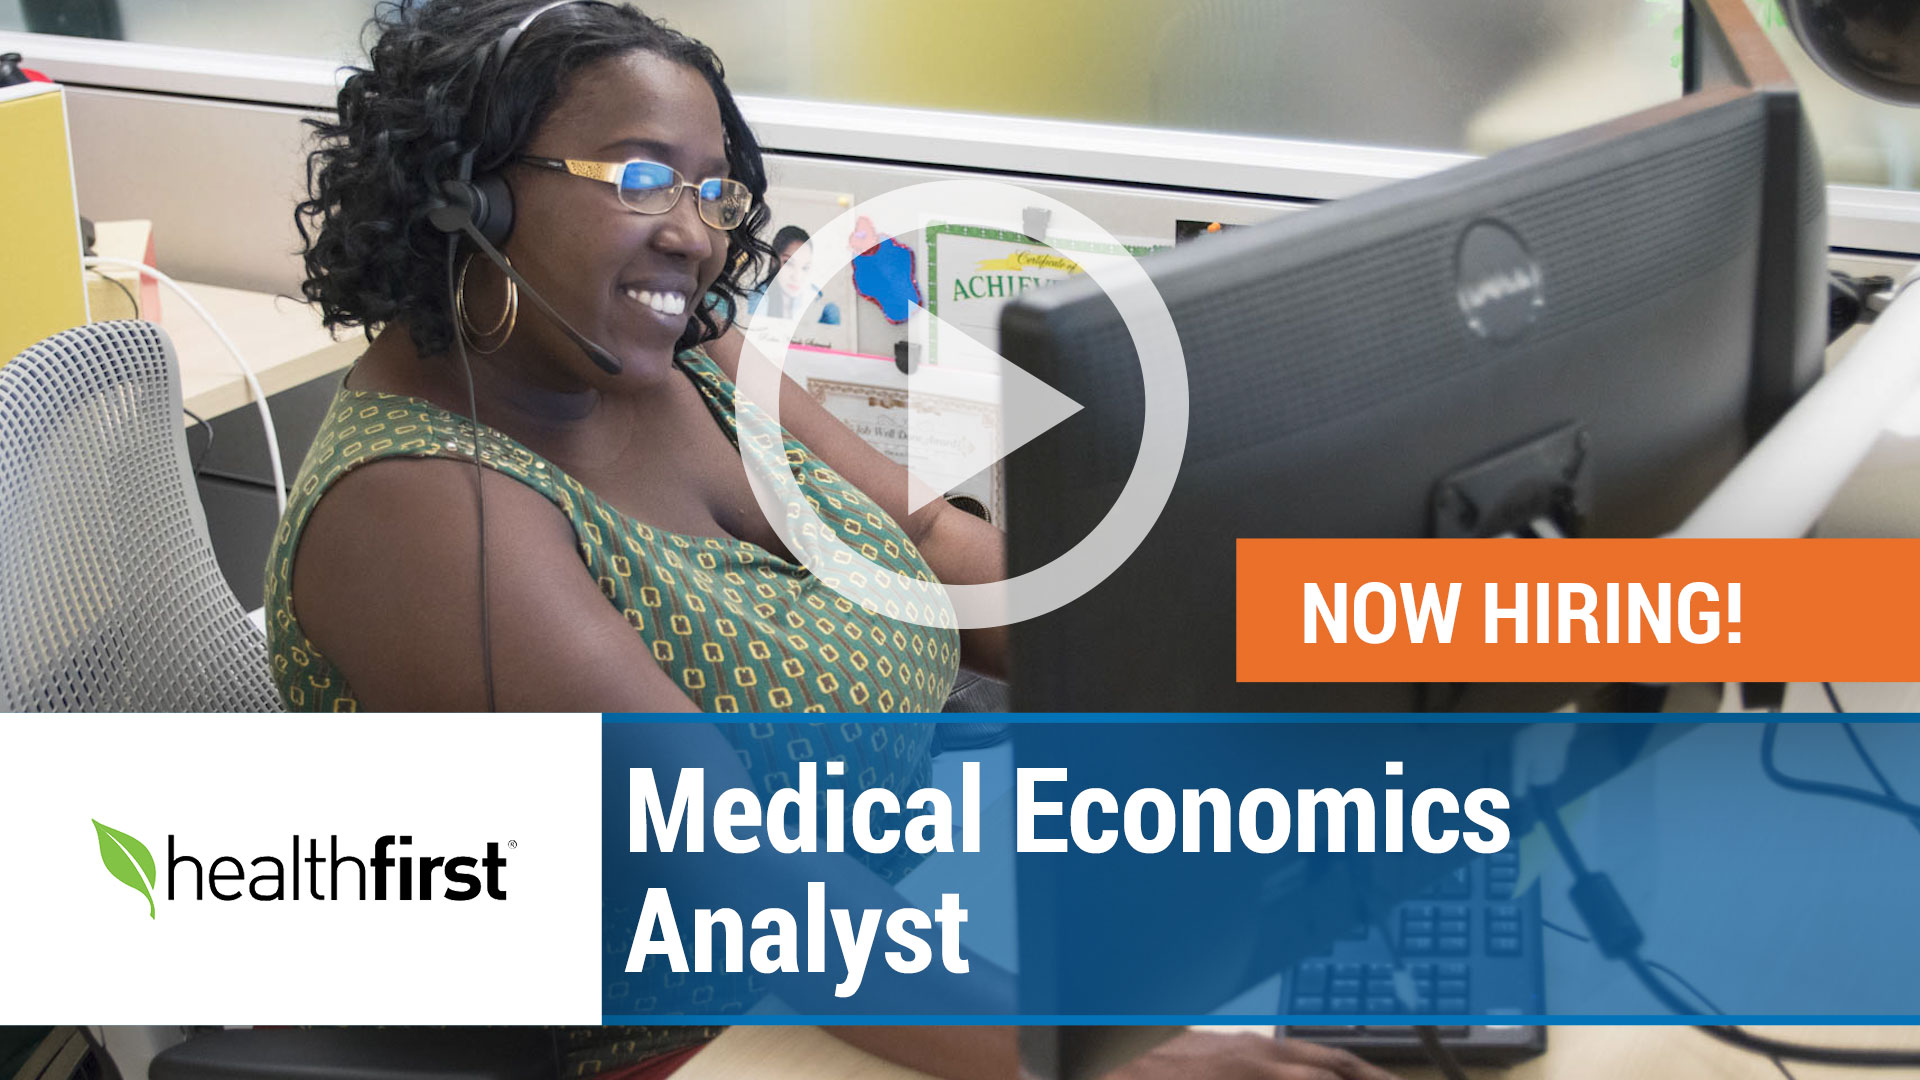 Watch our careers video for available job opening Medical Economics Analyst in New York, NY, USA